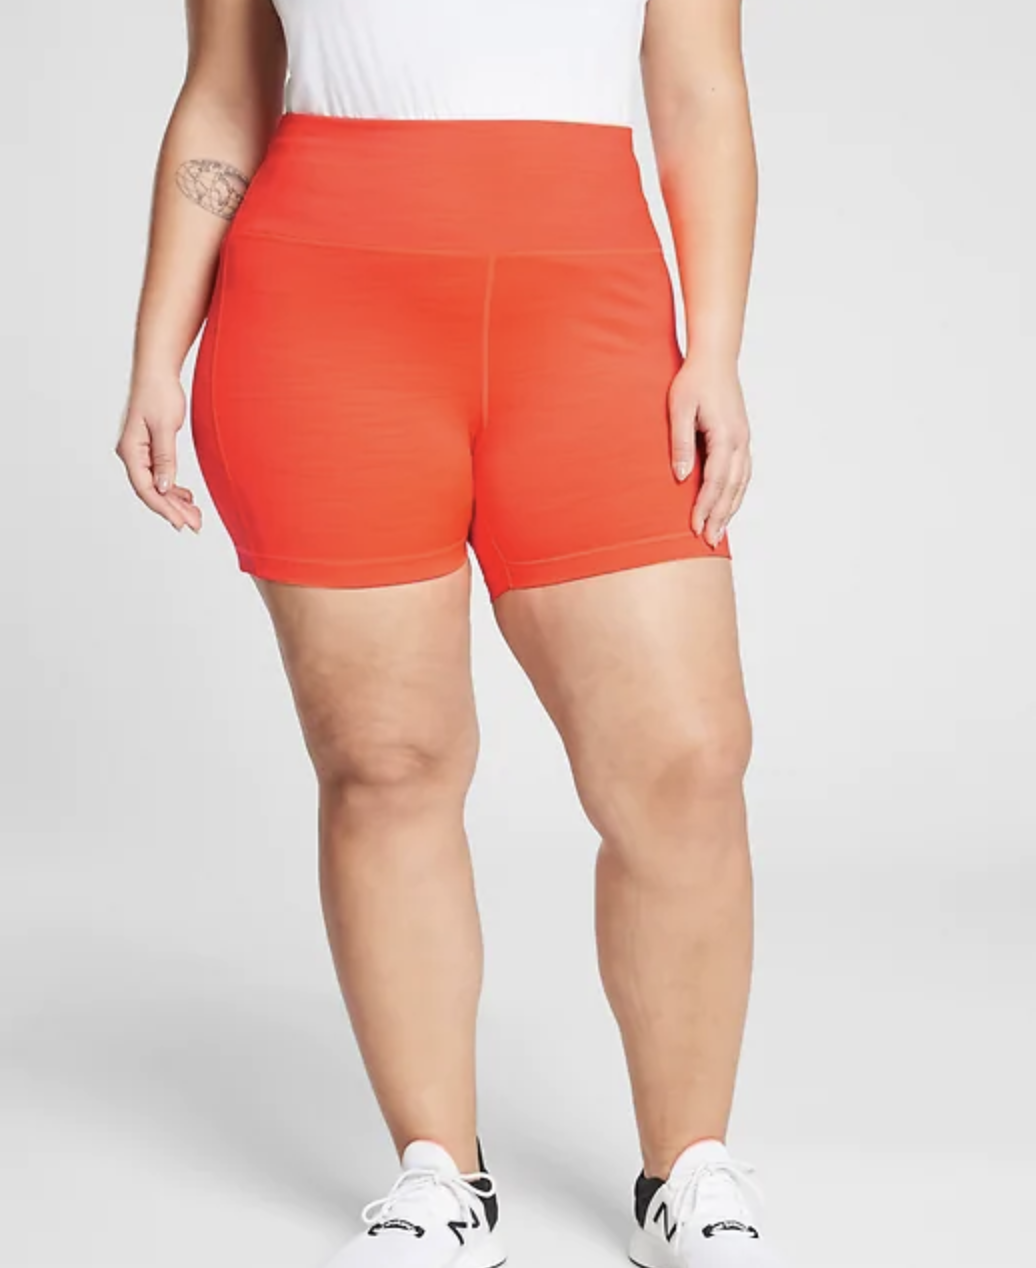 A model in orange high waist bike shorts that fall mid-thigh